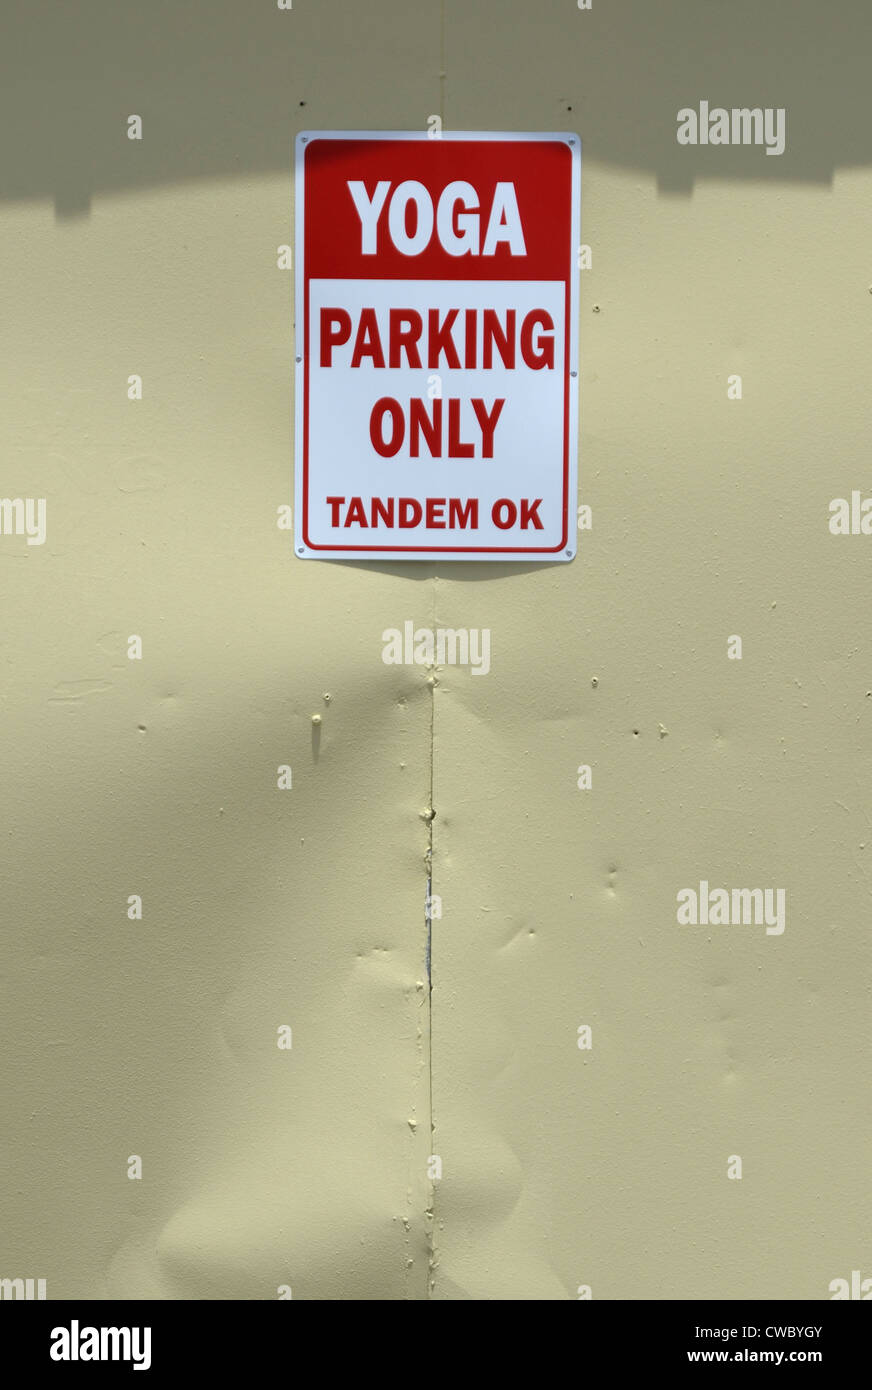 Yoga Studio Parking SIgn - Stock Image